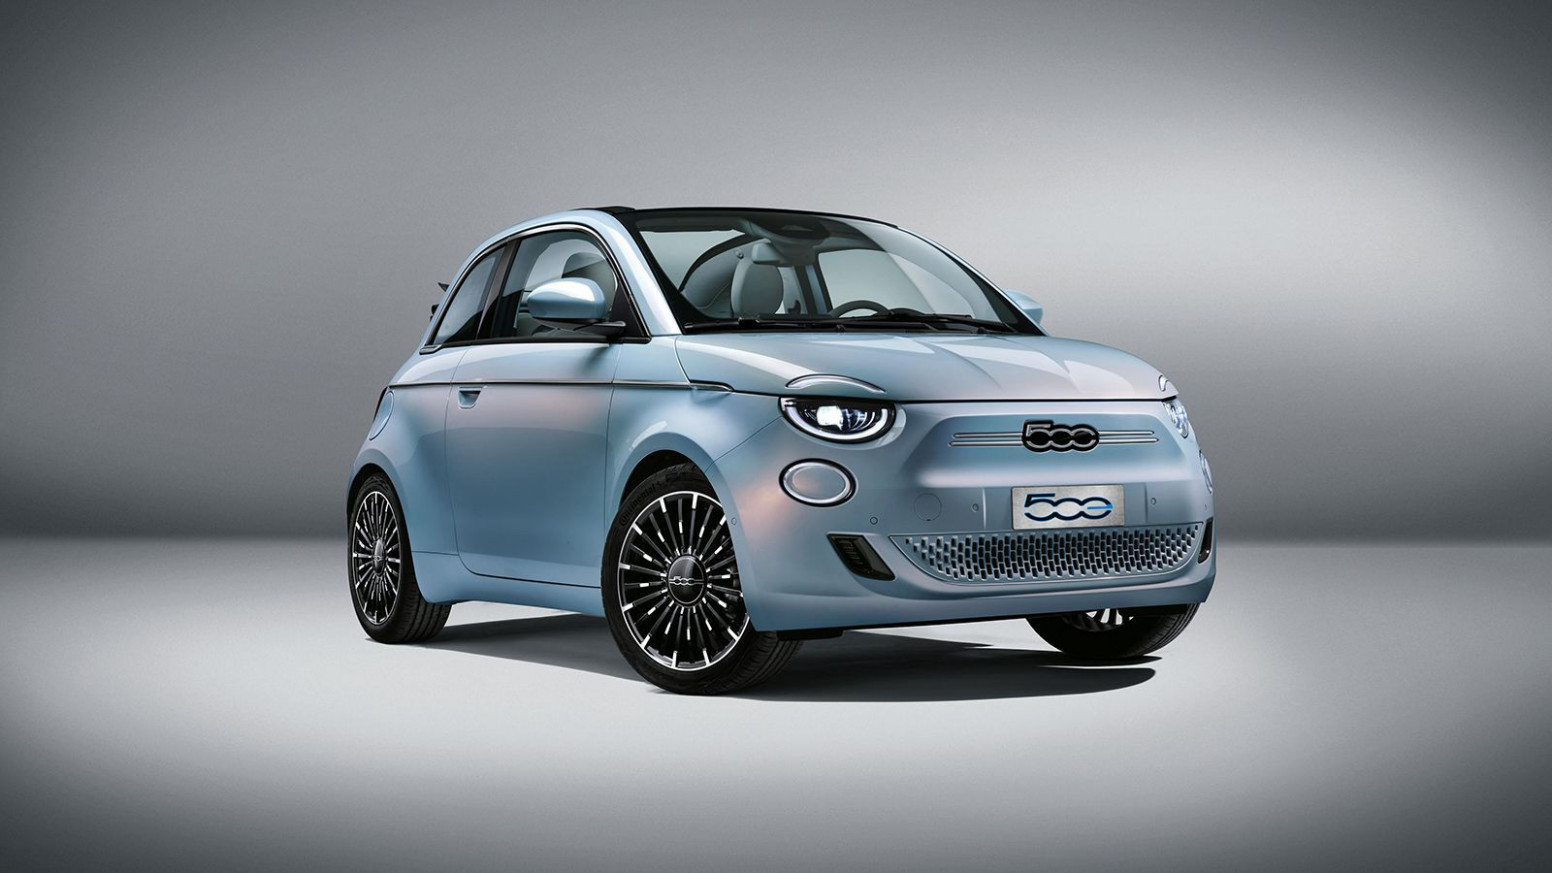 New Model and Performance 2022 Fiat 500 Abarth